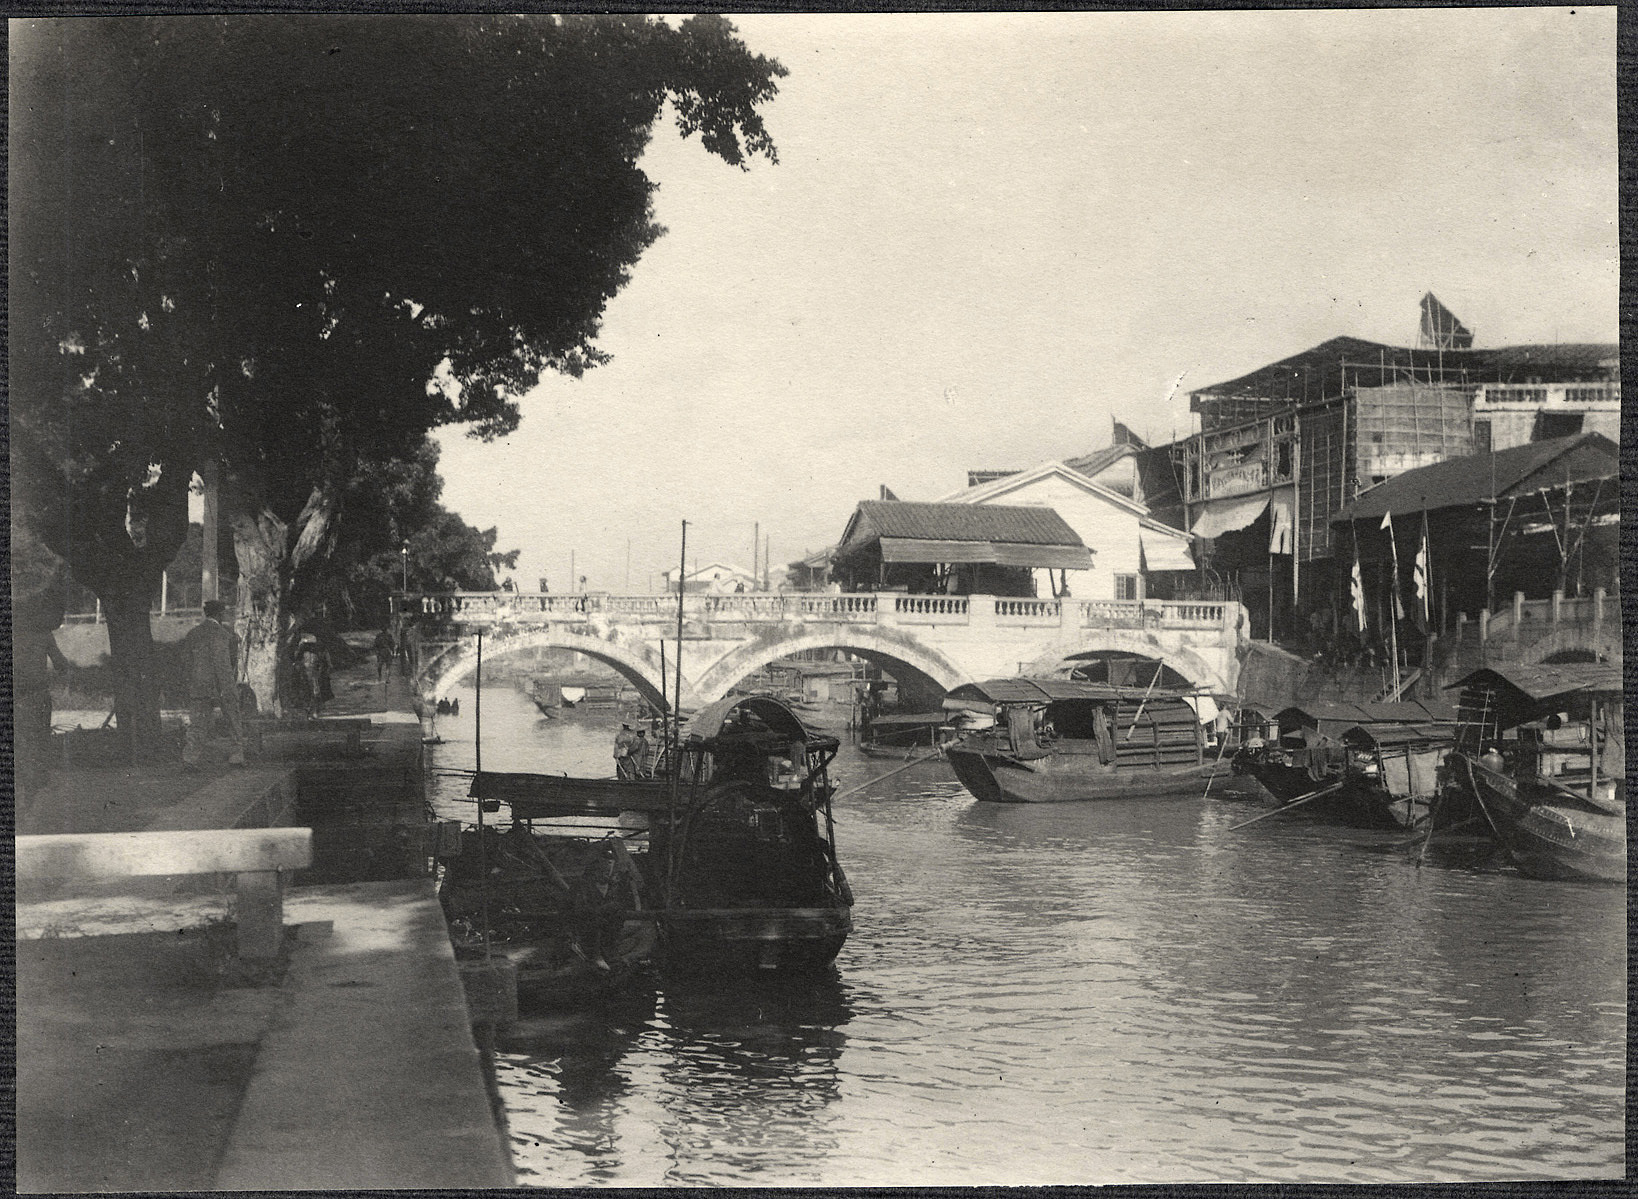 Guangzhou: Bridge connecting British concession on Shamian Island with the city of Guangzhou